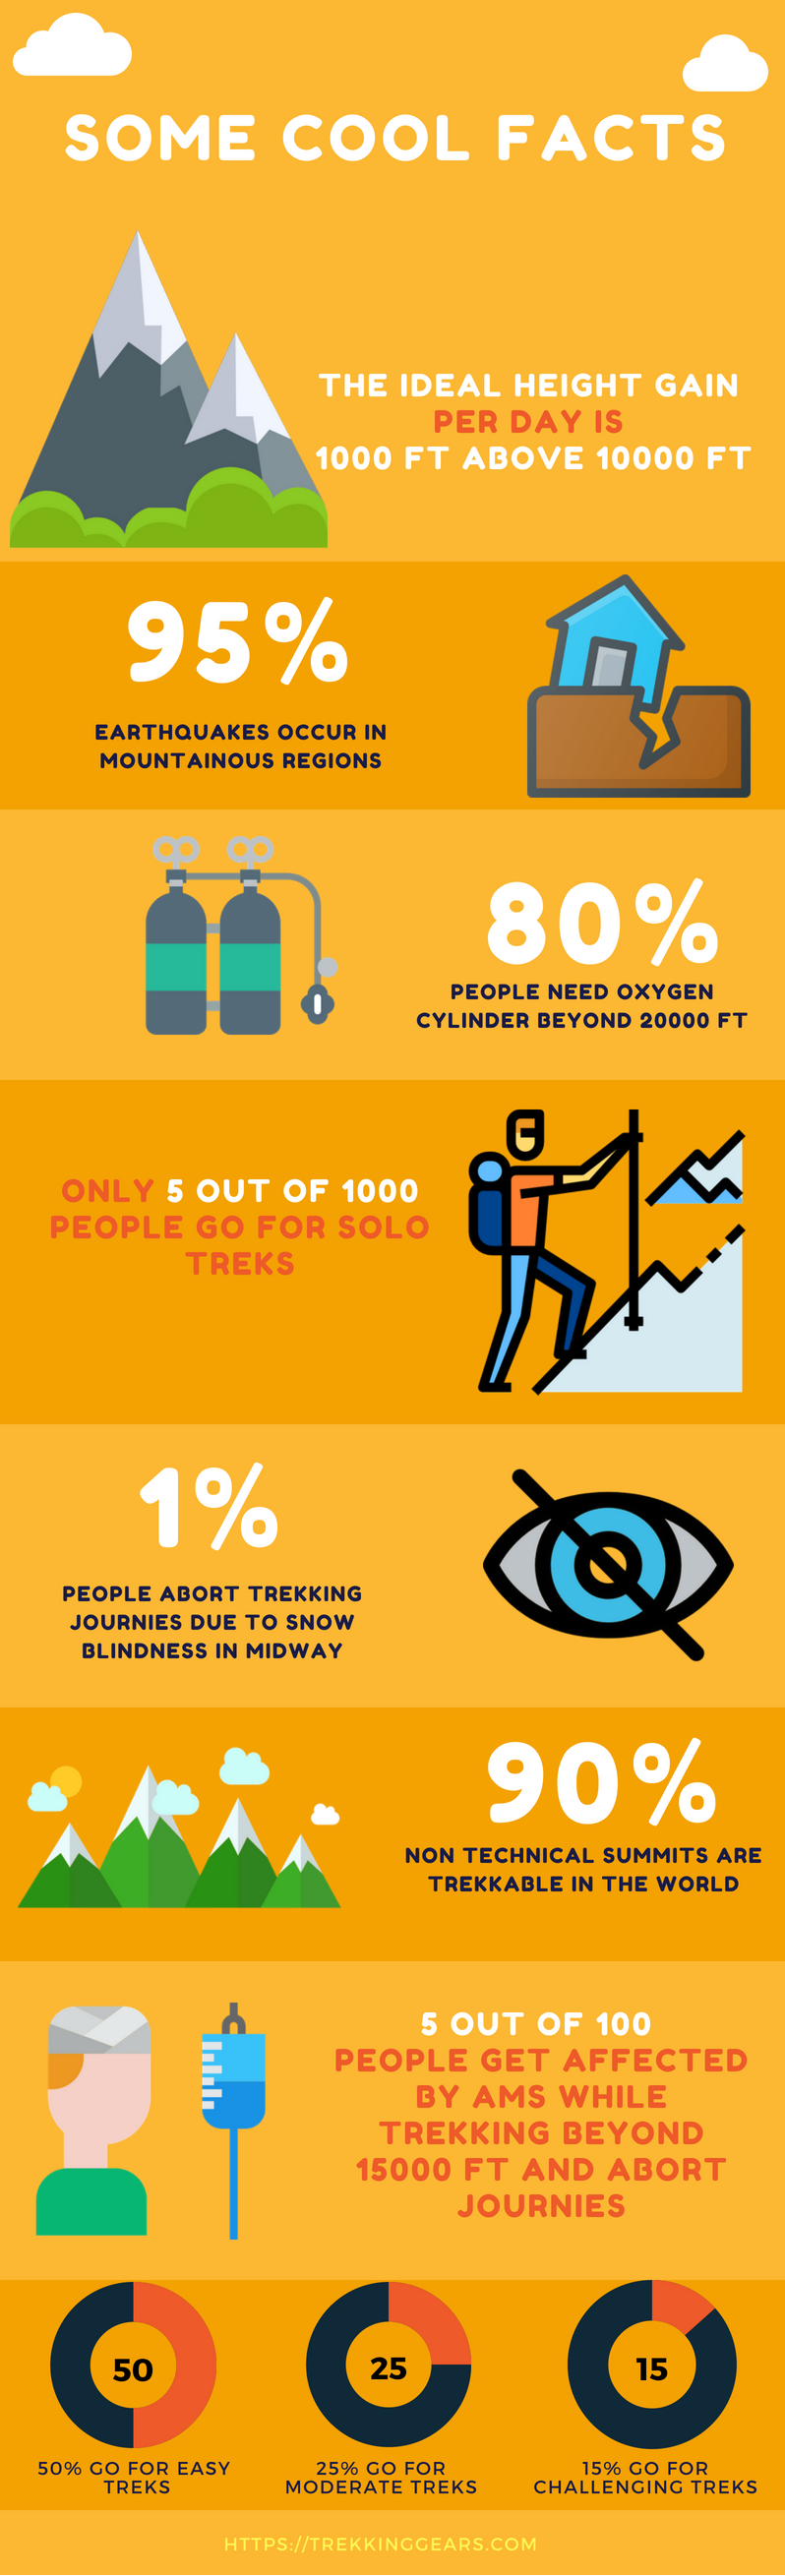 Facts and Features of Trekking